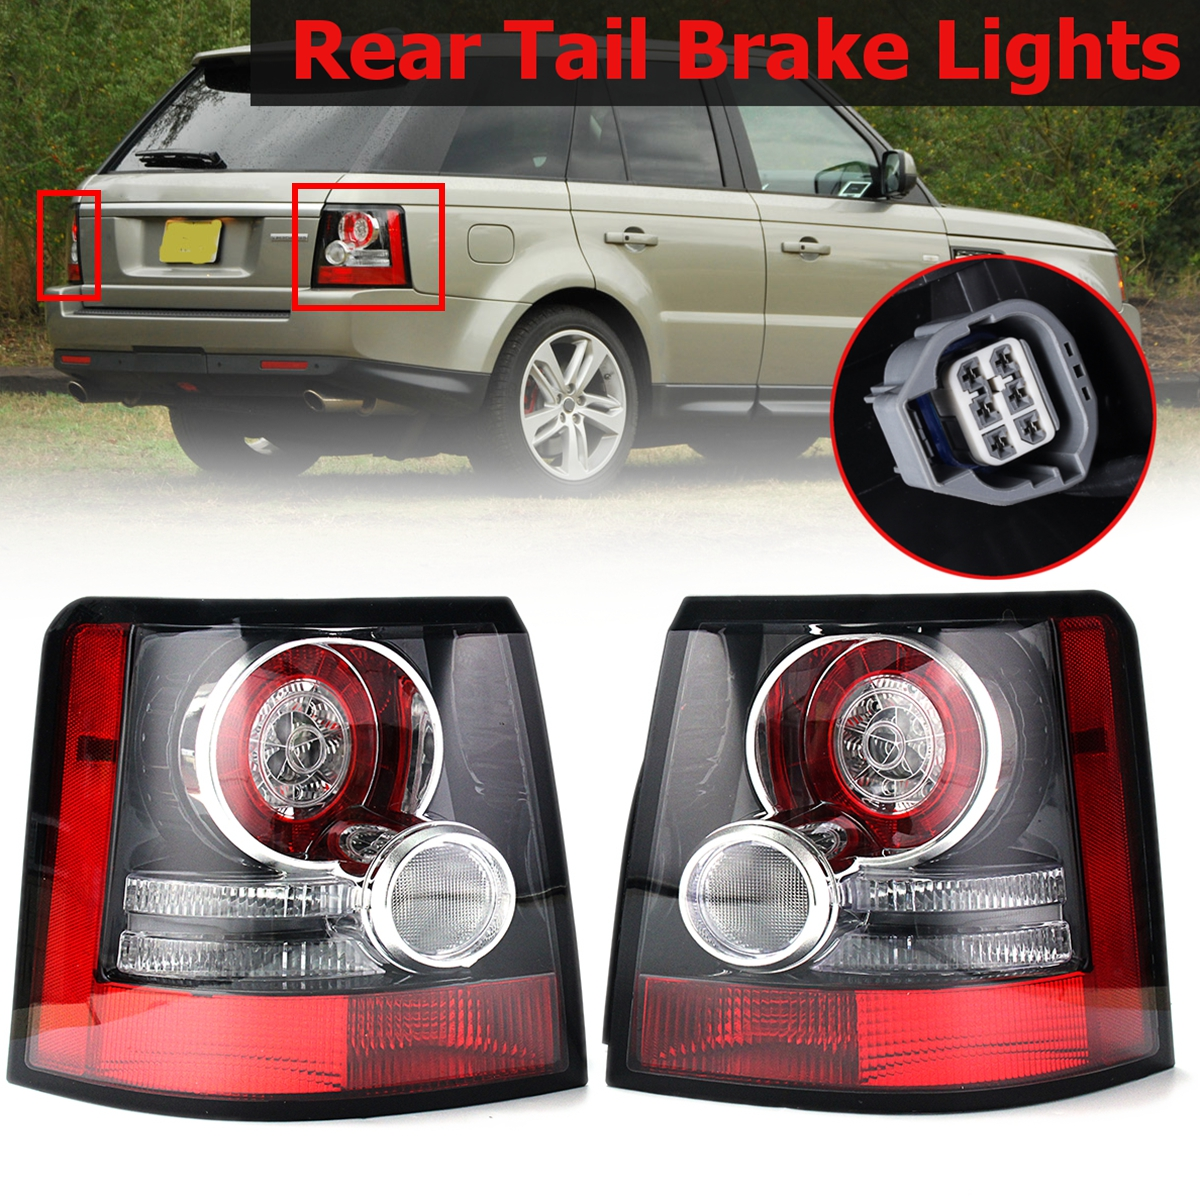 1 Pair Rear Tail Brake Lights Bumper Reflector Tail Brake Stop Light For Land Rover Range Rover Sport 2005 2006 2007-2013